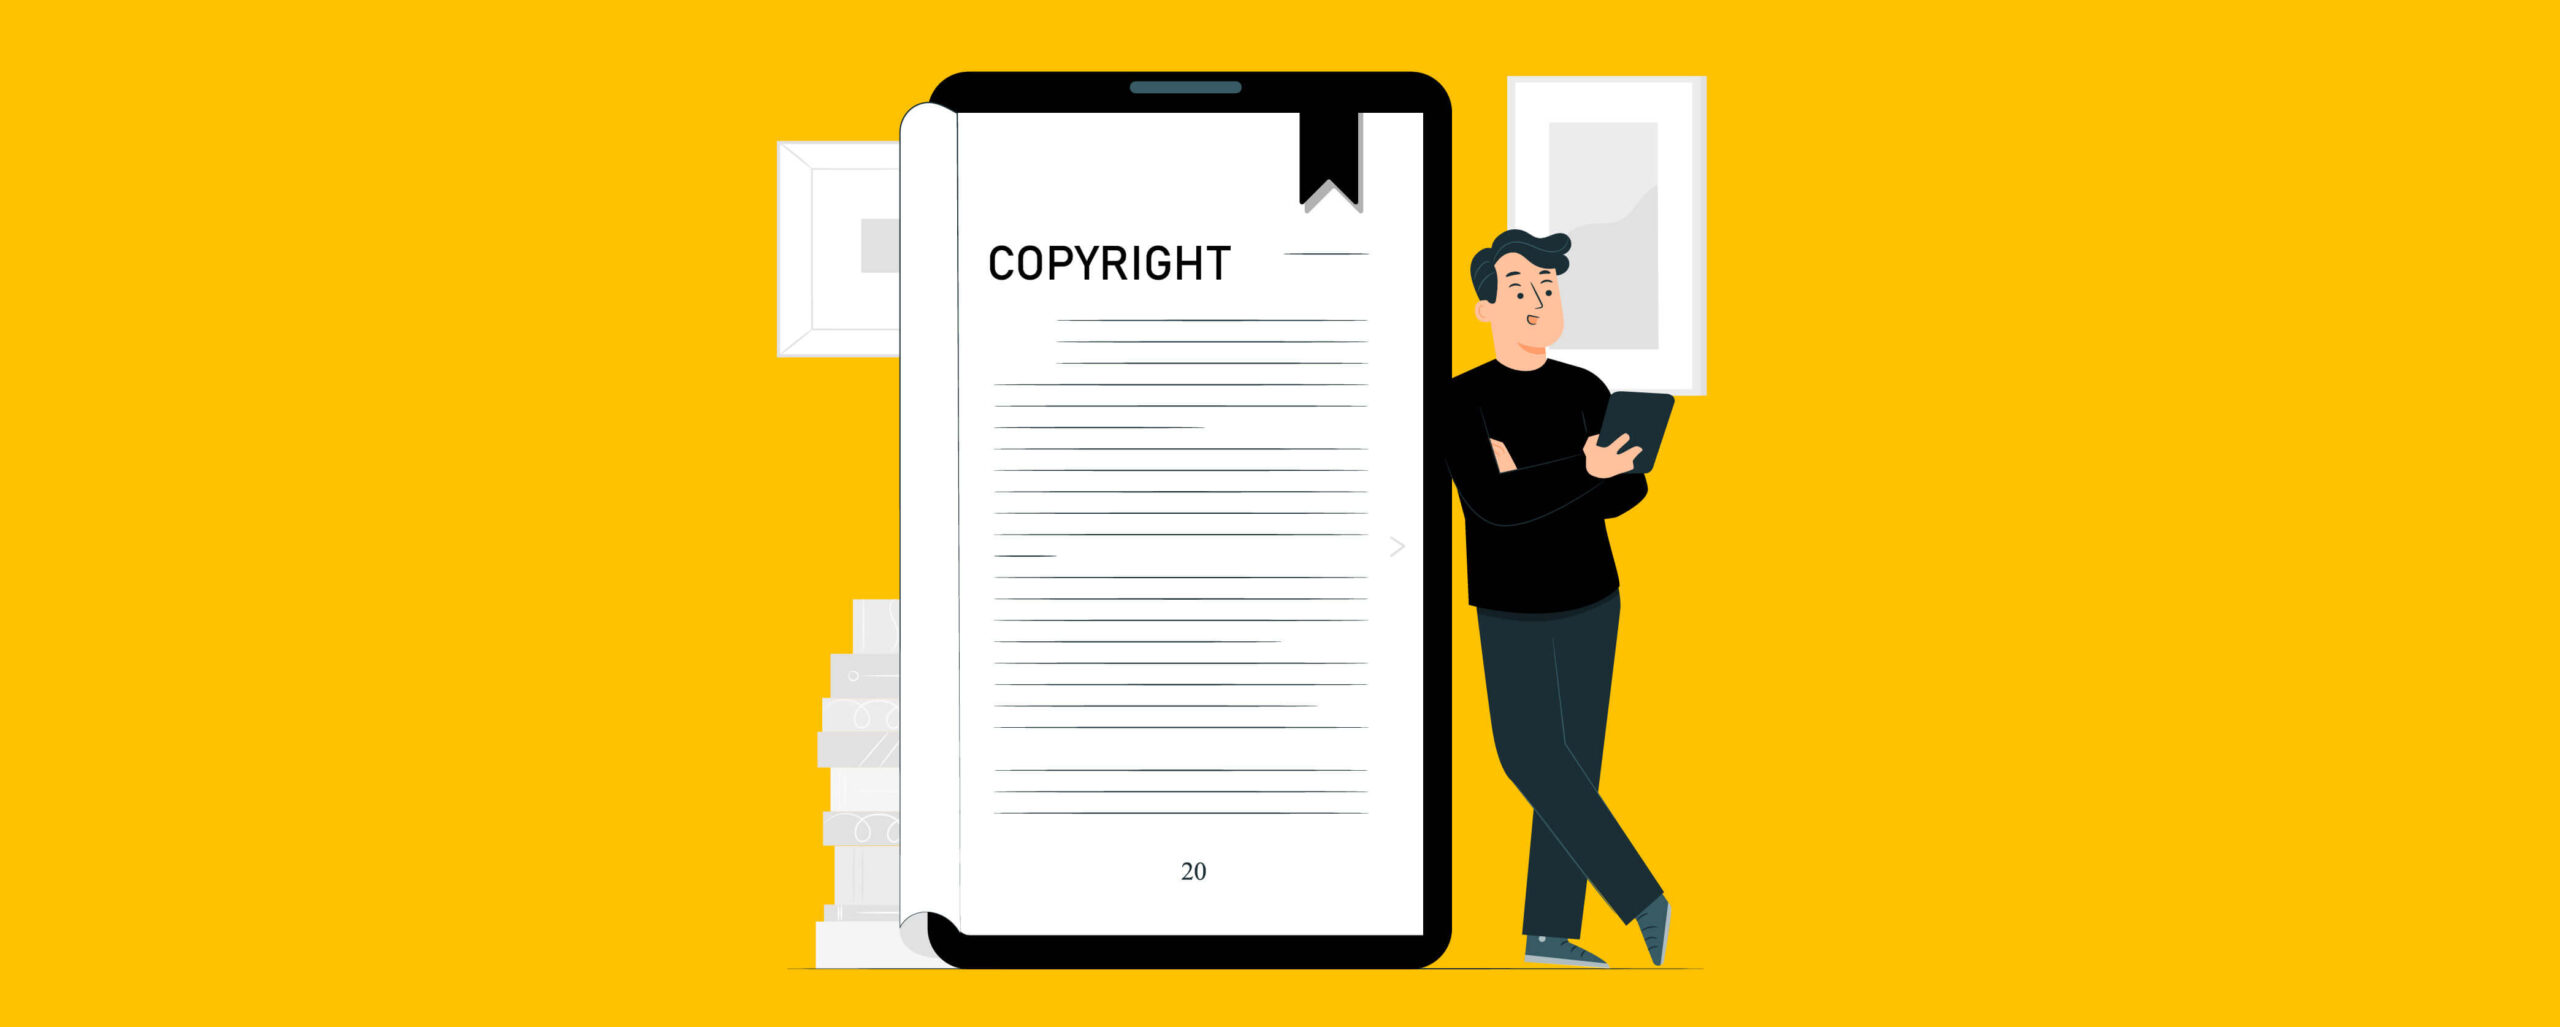 The Importance Of Copyright